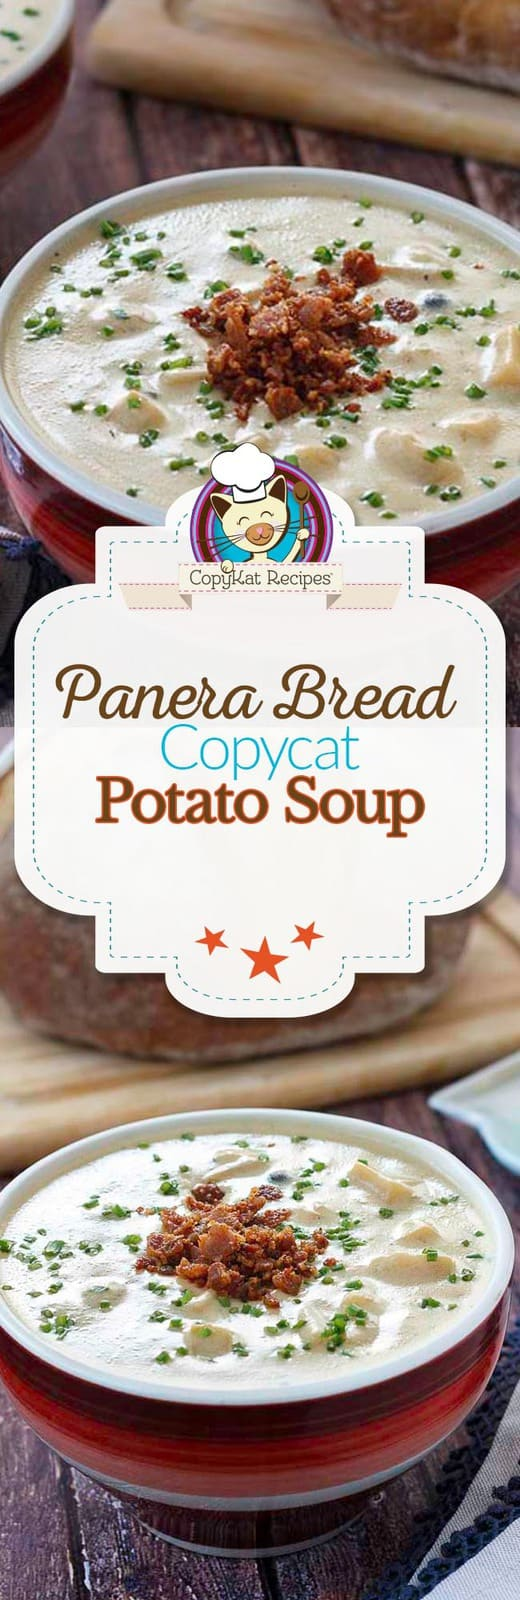 Panera Bread potato soup can be made in your own kitchen with this easy copycat recipe. #copycat #soup #panera #bakedpotatosoup #potatosoup #soup